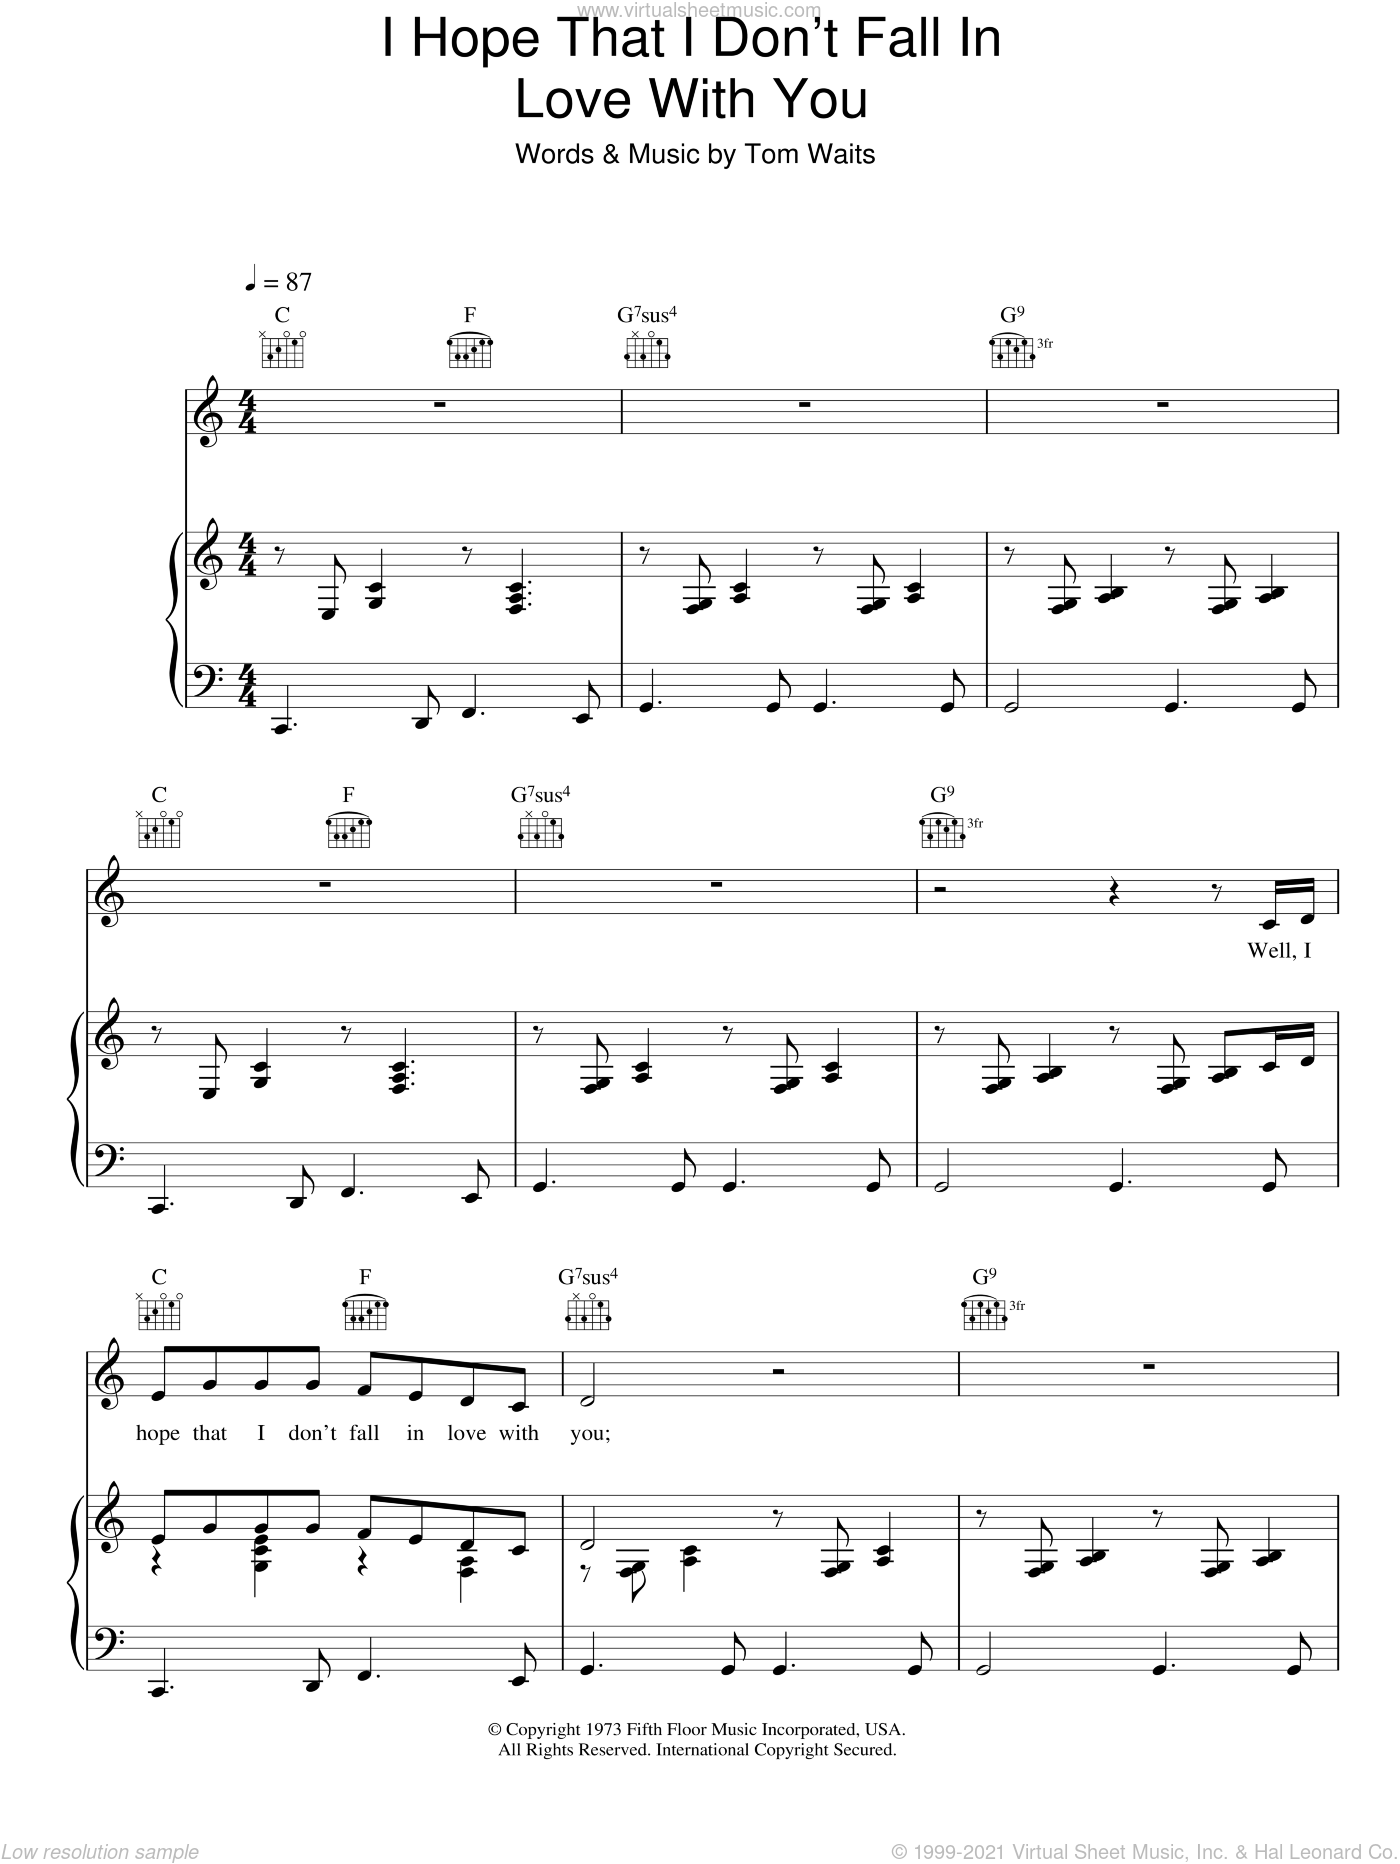 I Hope That I Don't Fall In Love With You sheet music for voice, piano or guitar by Tom Waits